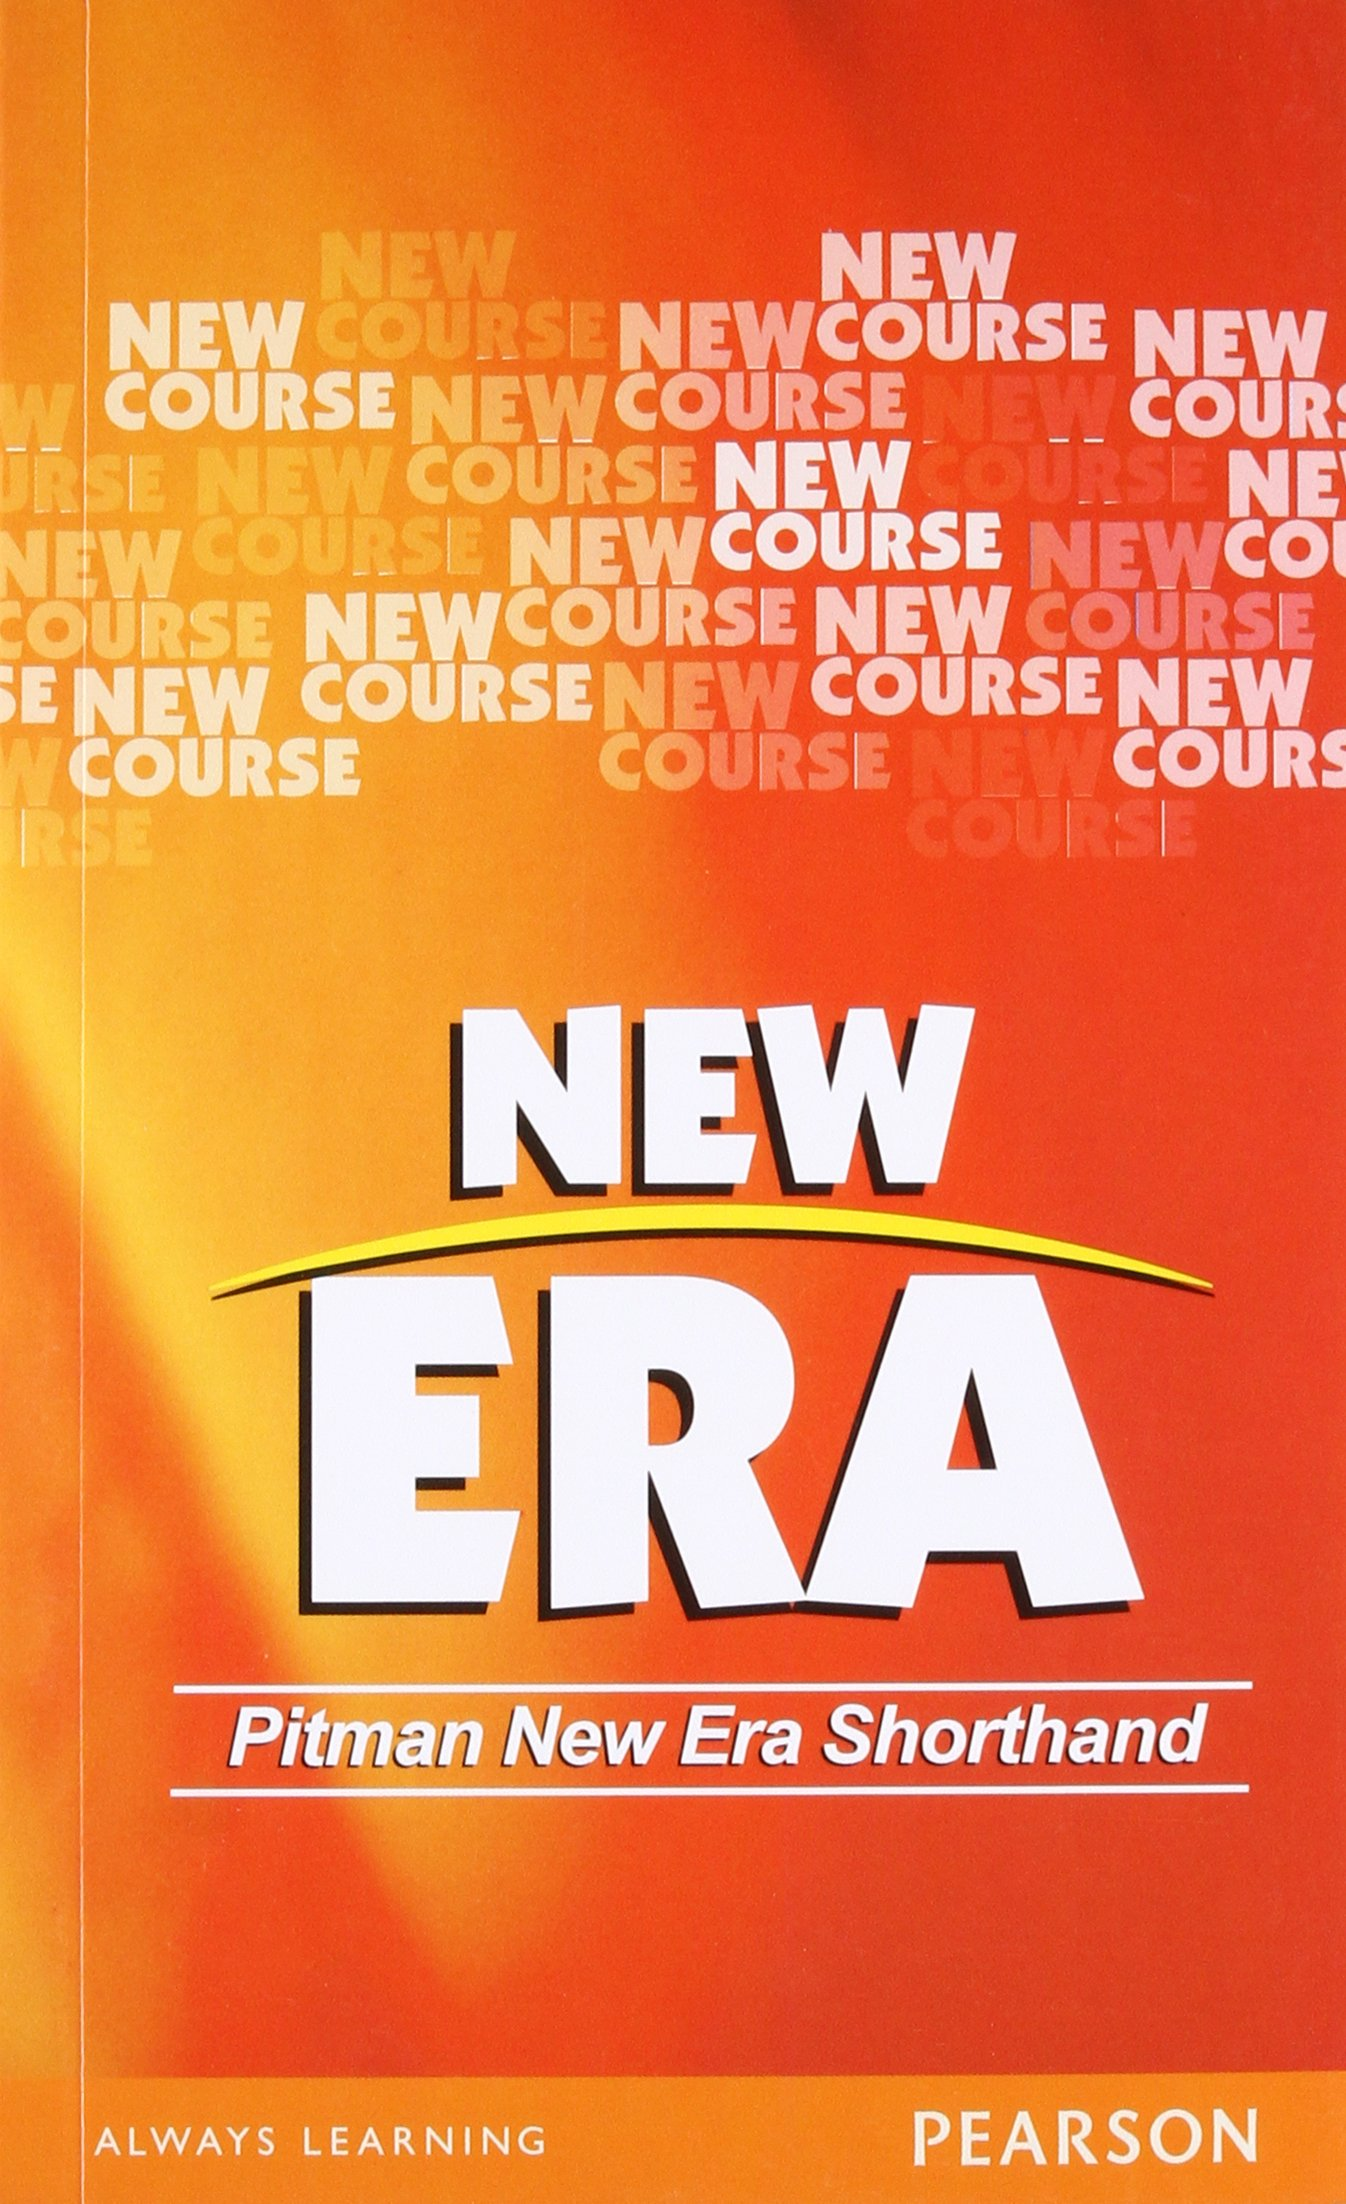 Buy New Era Pitman New Era Shorthand Book Online At Low Prices In